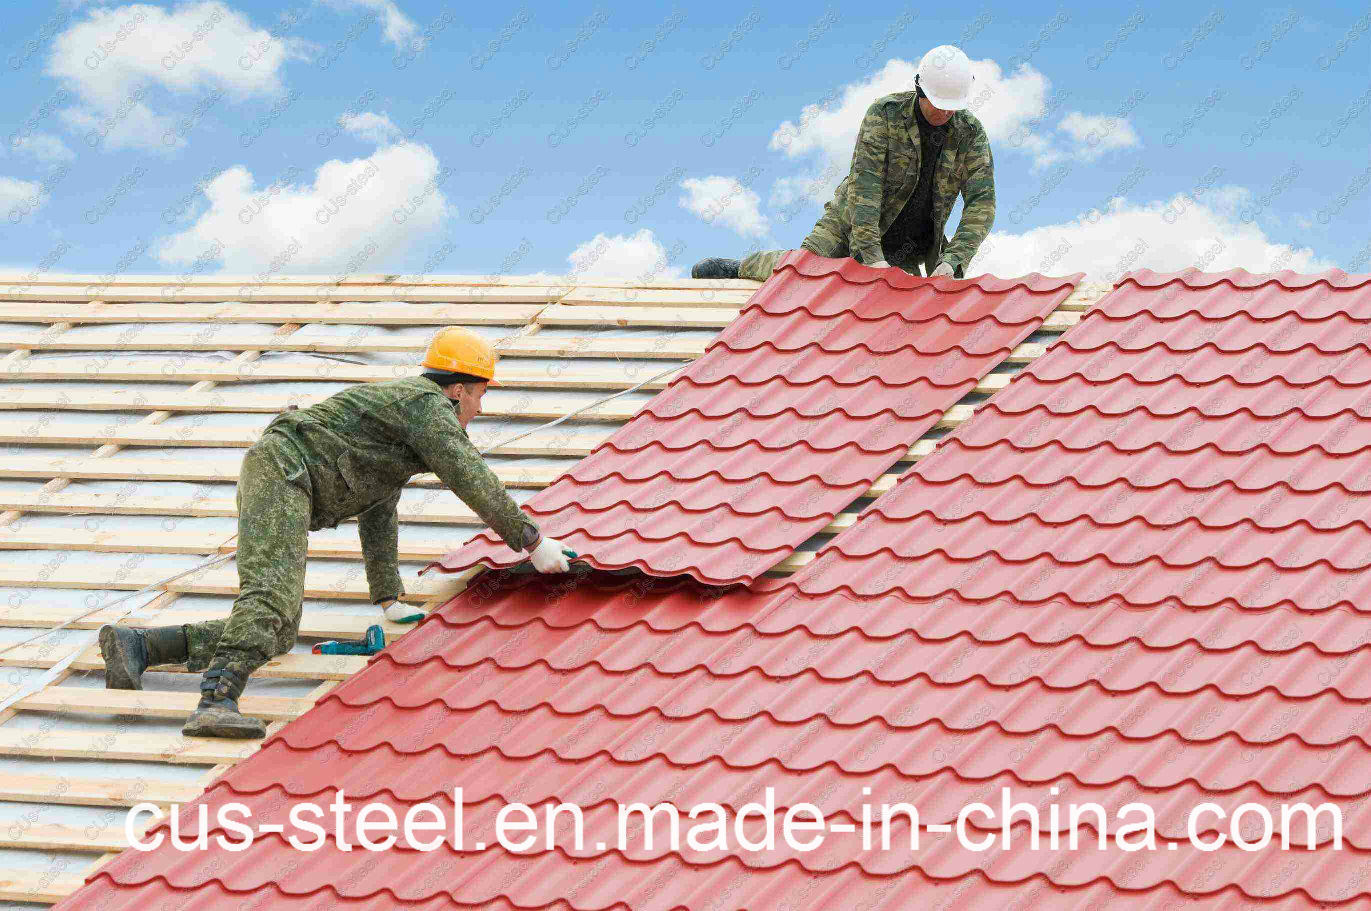 China Colorful Metal Roof TileCorrugated Roofing